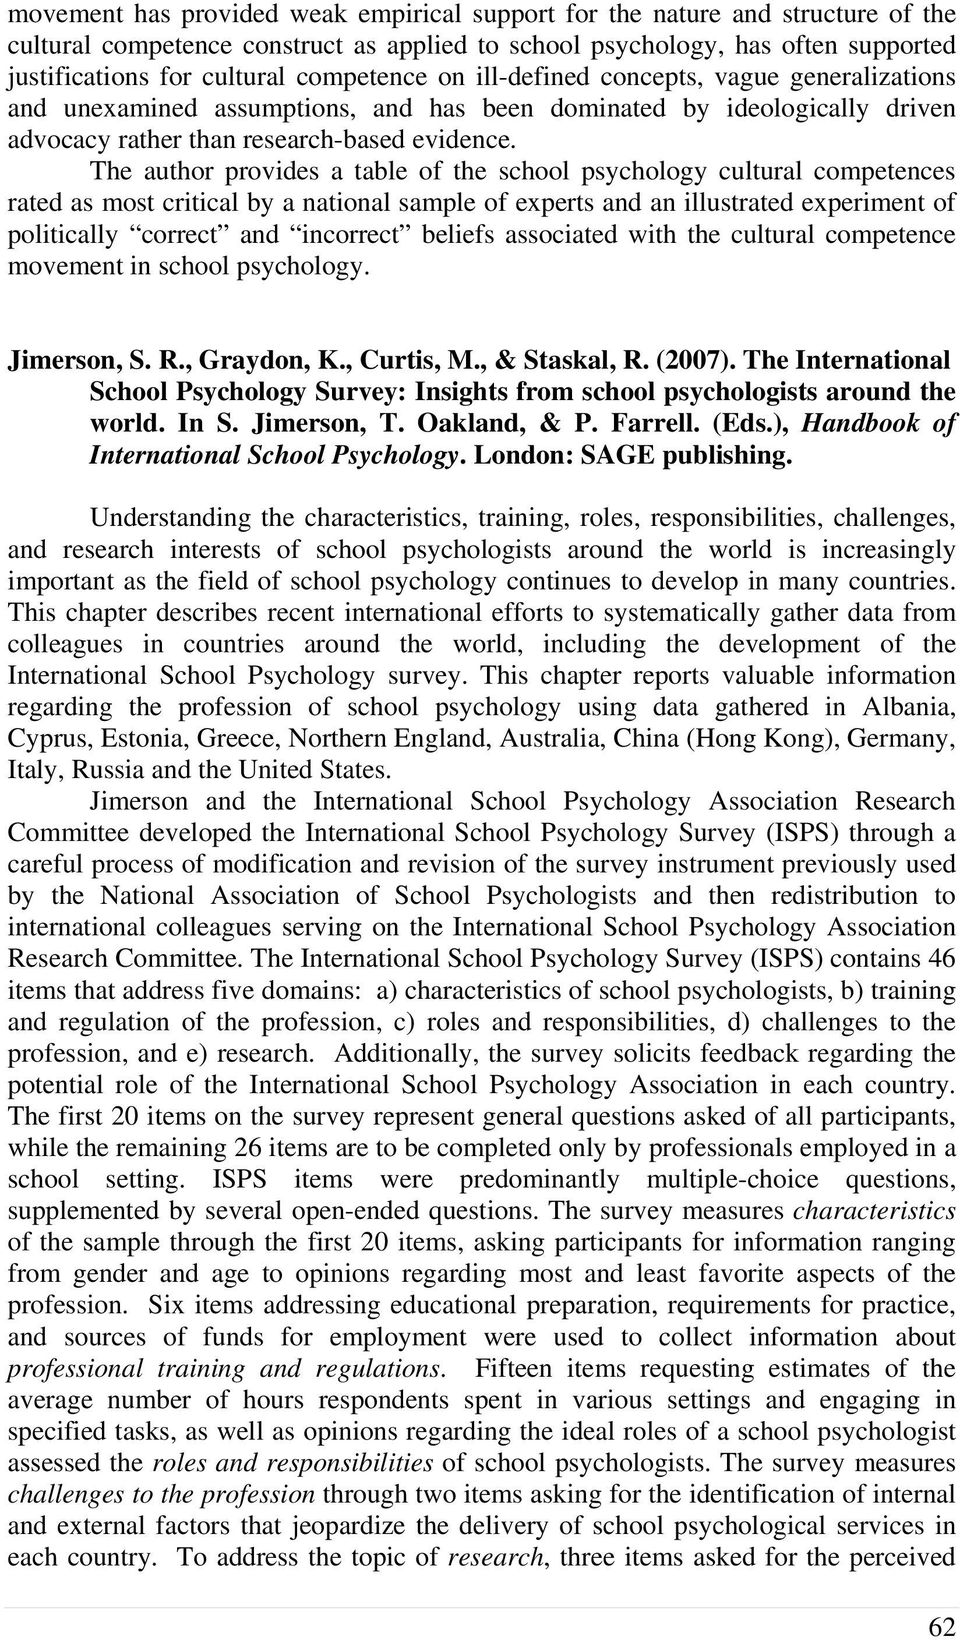 The author provides a table of the school psychology cultural competences rated as most critical by a national sample of experts and an illustrated experiment of politically correct and incorrect